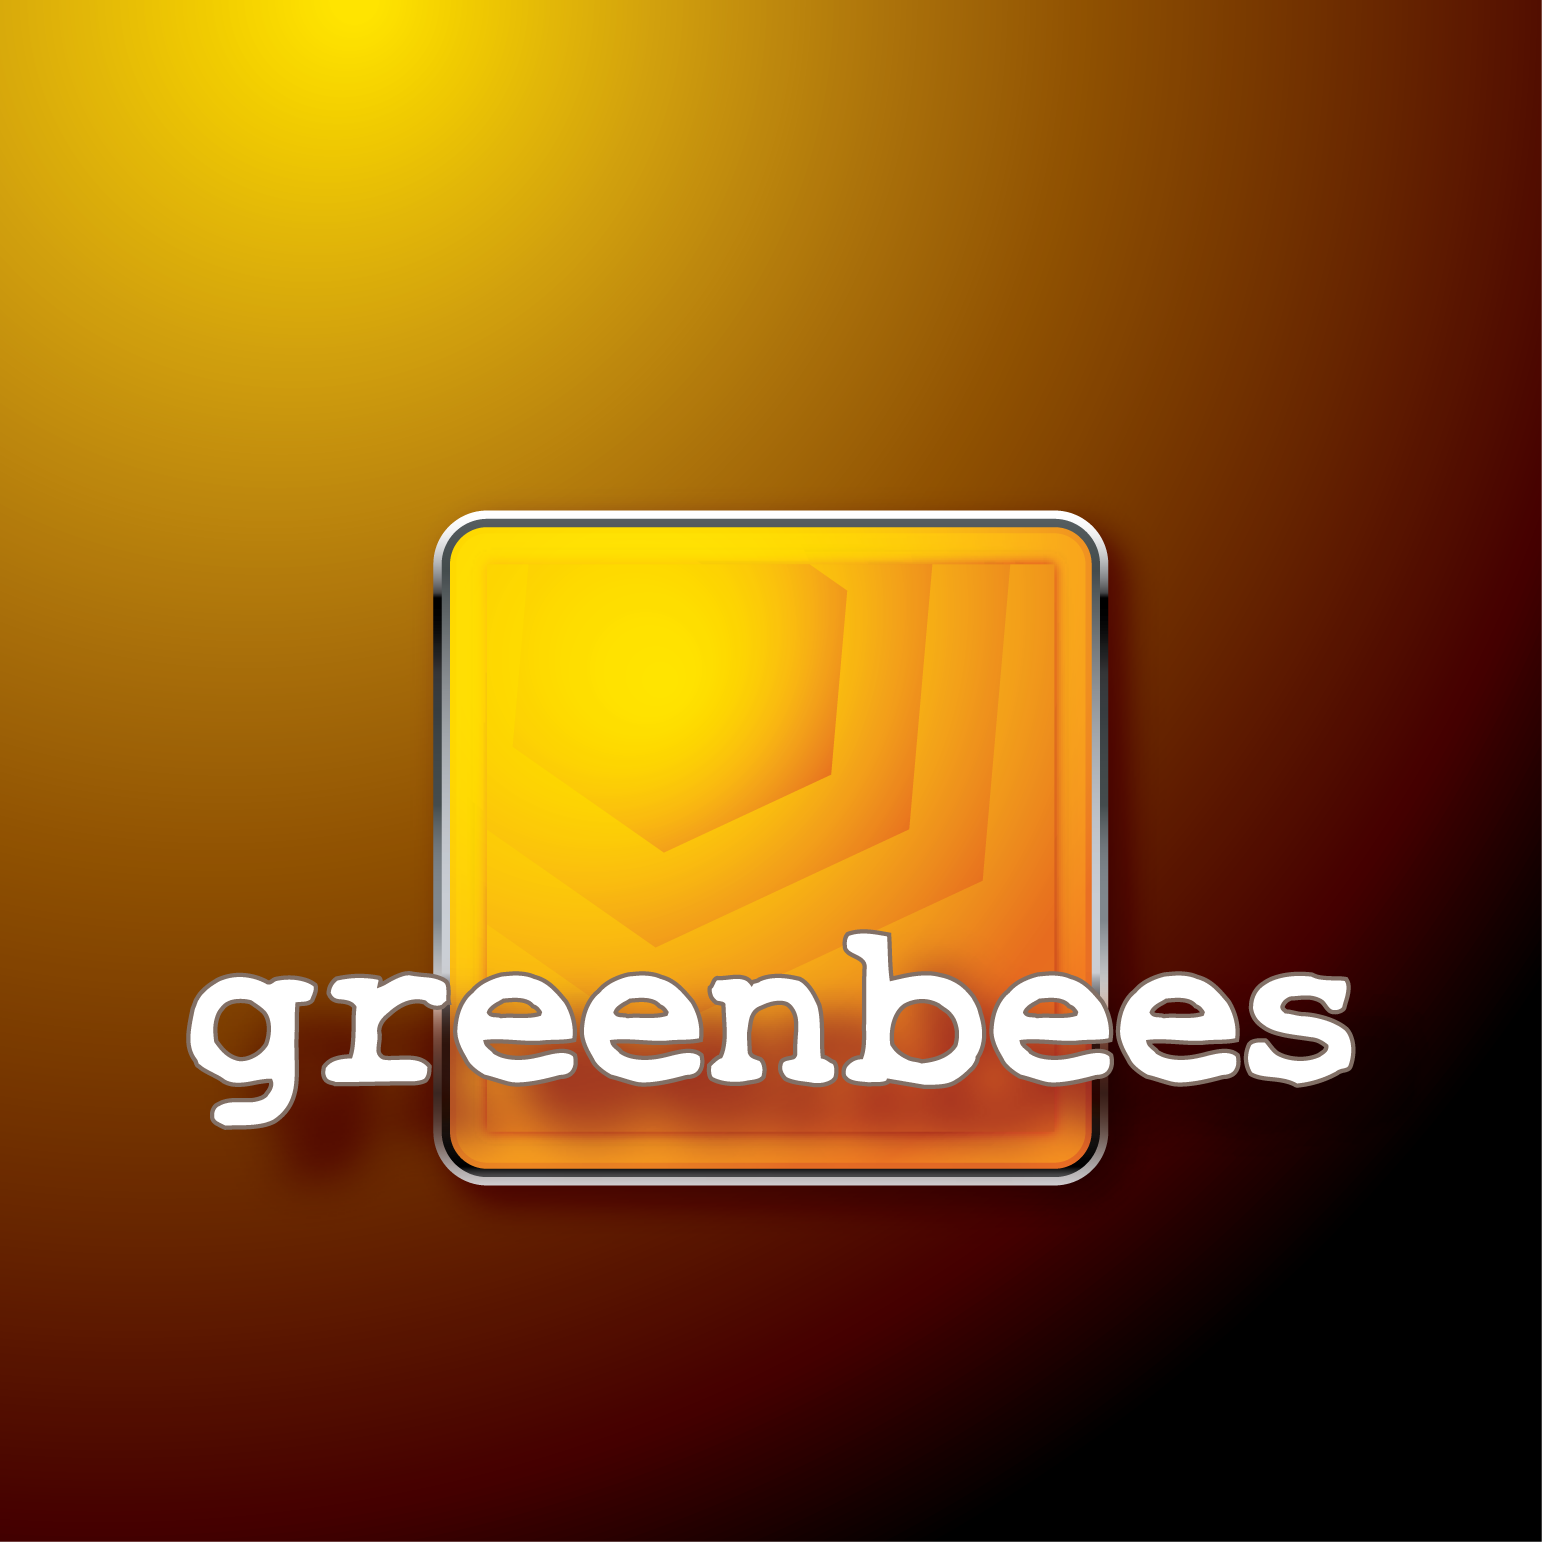 Logo Design by Teresa Abney - Entry No. 267 in the Logo Design Contest Greenbees Logo Design.